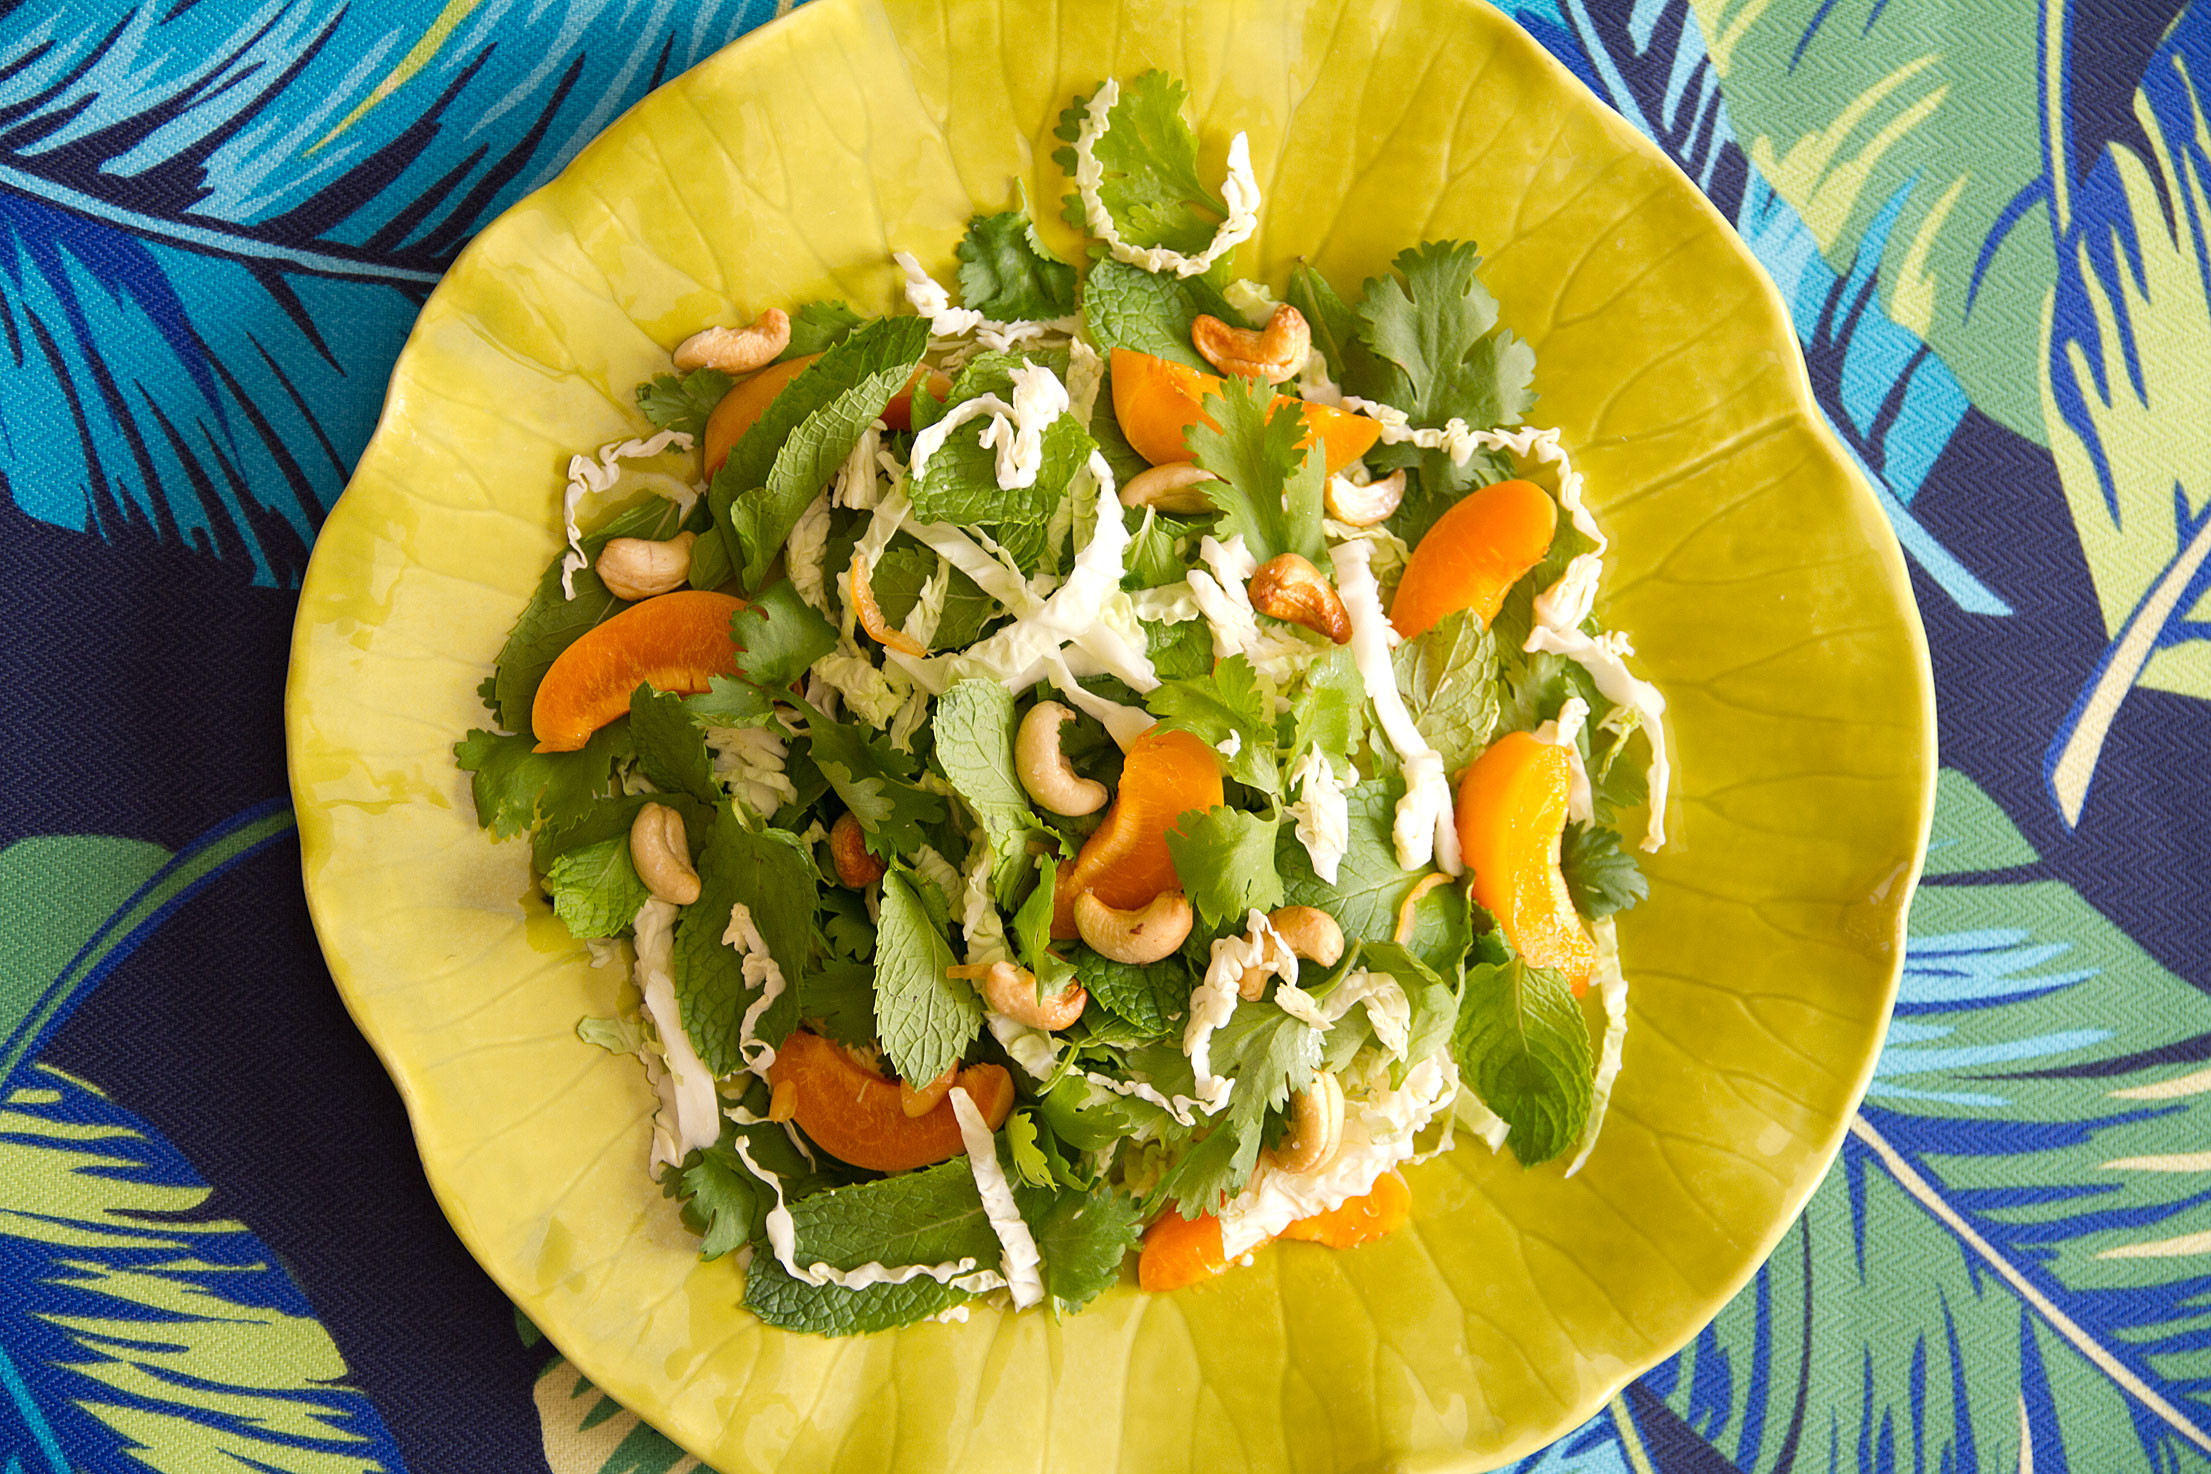 cabbage and apricot salad with lemongrass-lime dressing is my definition of a great salad